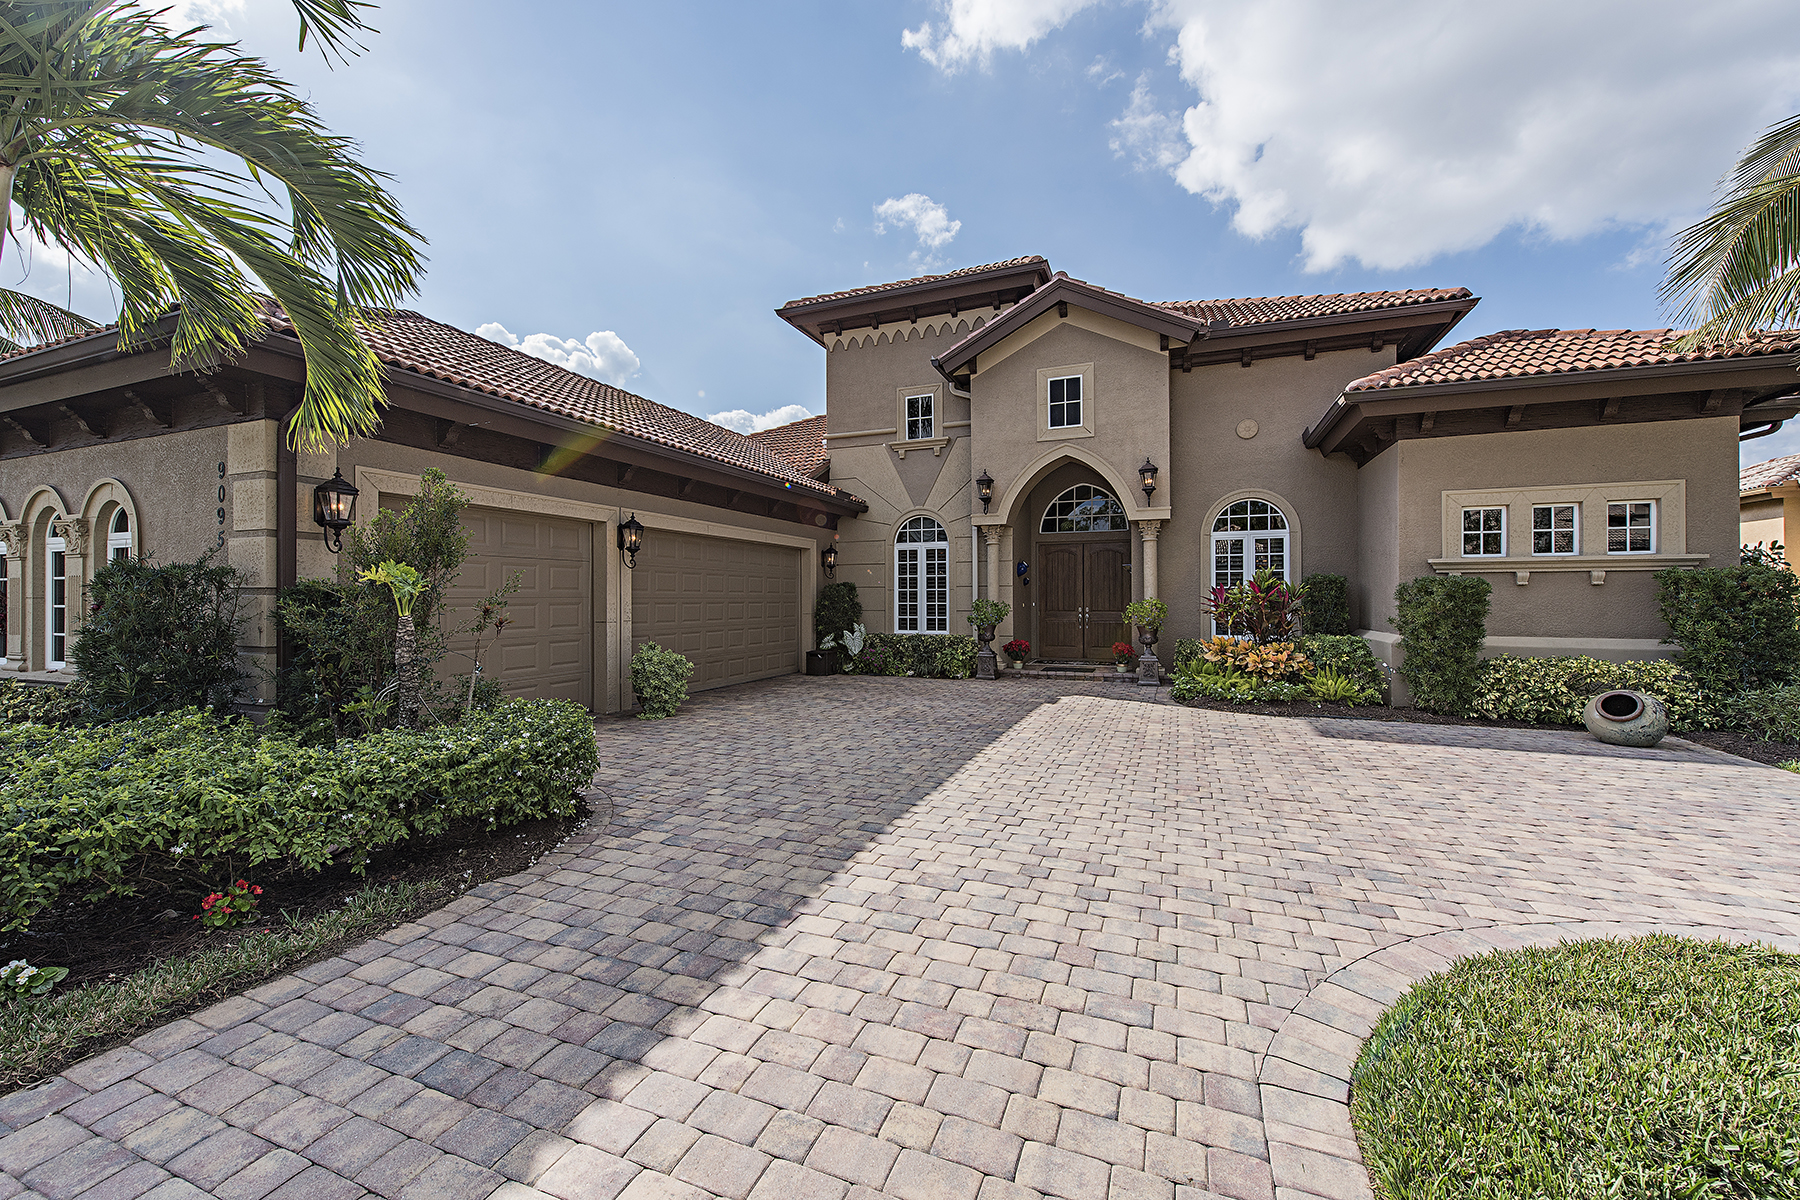 Single Family Home for Sale at LELY RESORT - MAJORS 9095 Sahalee Ct, Naples, Florida 34113 United States